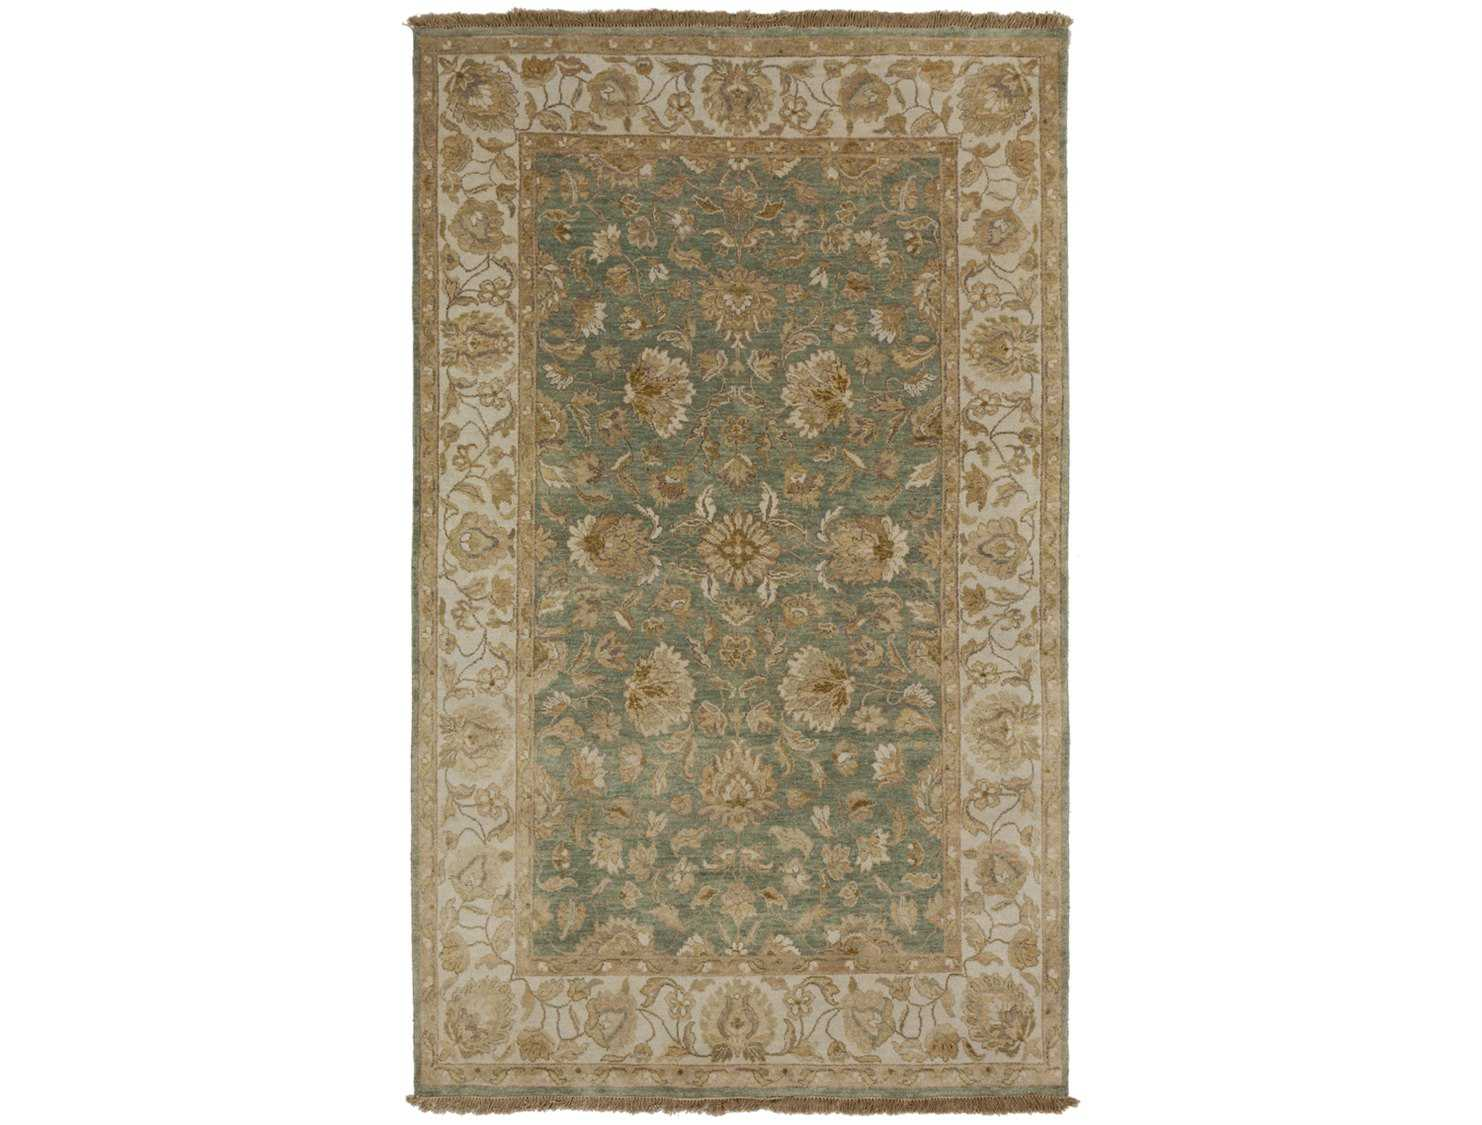 Surya candice olson temptress rectangular green area rug for Candice olson area rugs